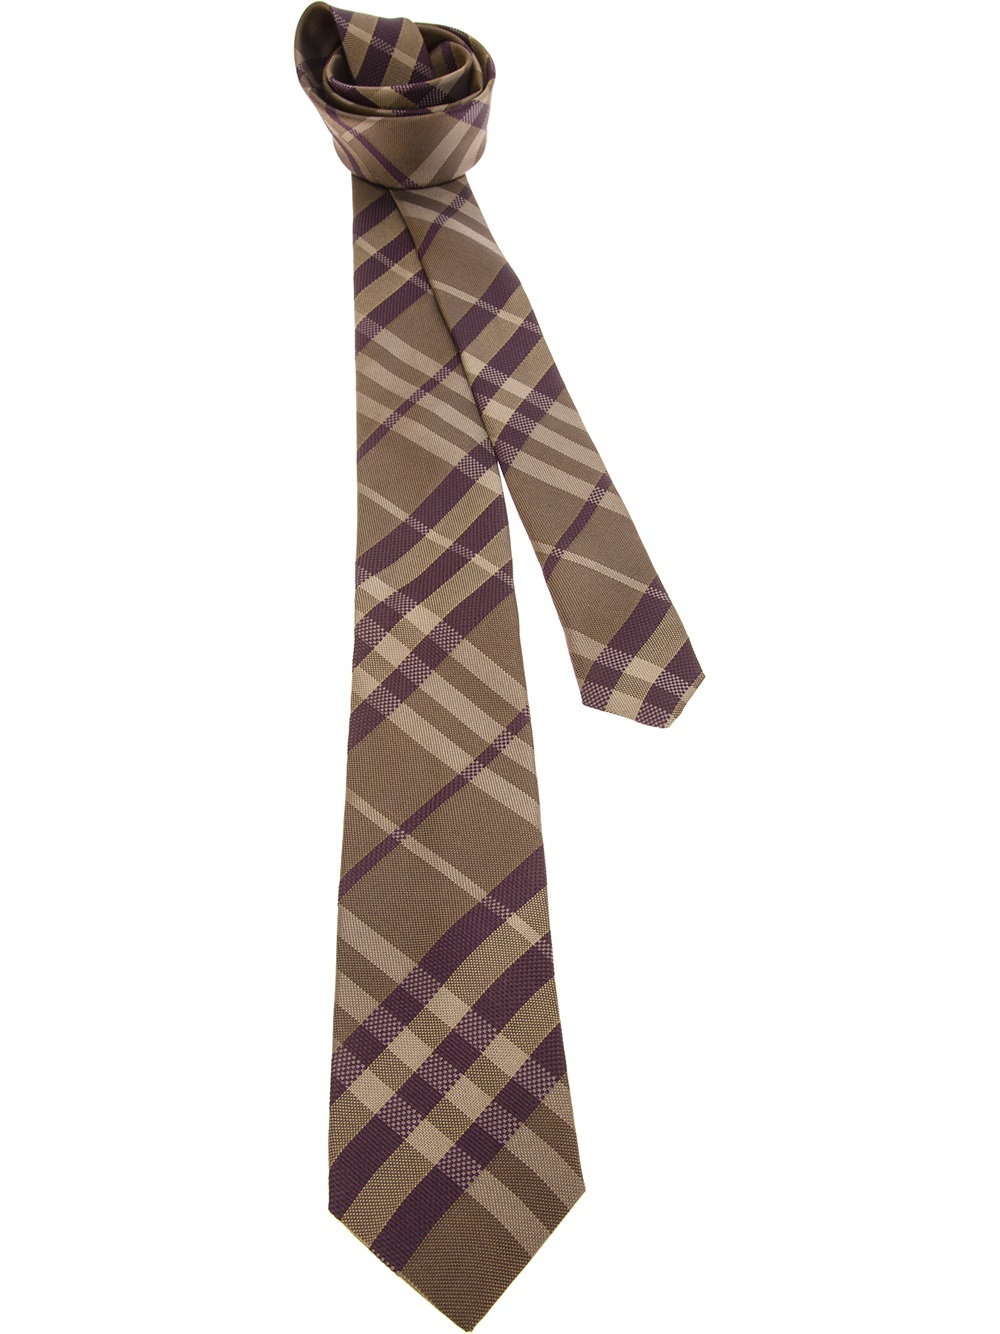 22f4334b5 ... sale lyst burberry tie in natural for men 0567f c1106 ...